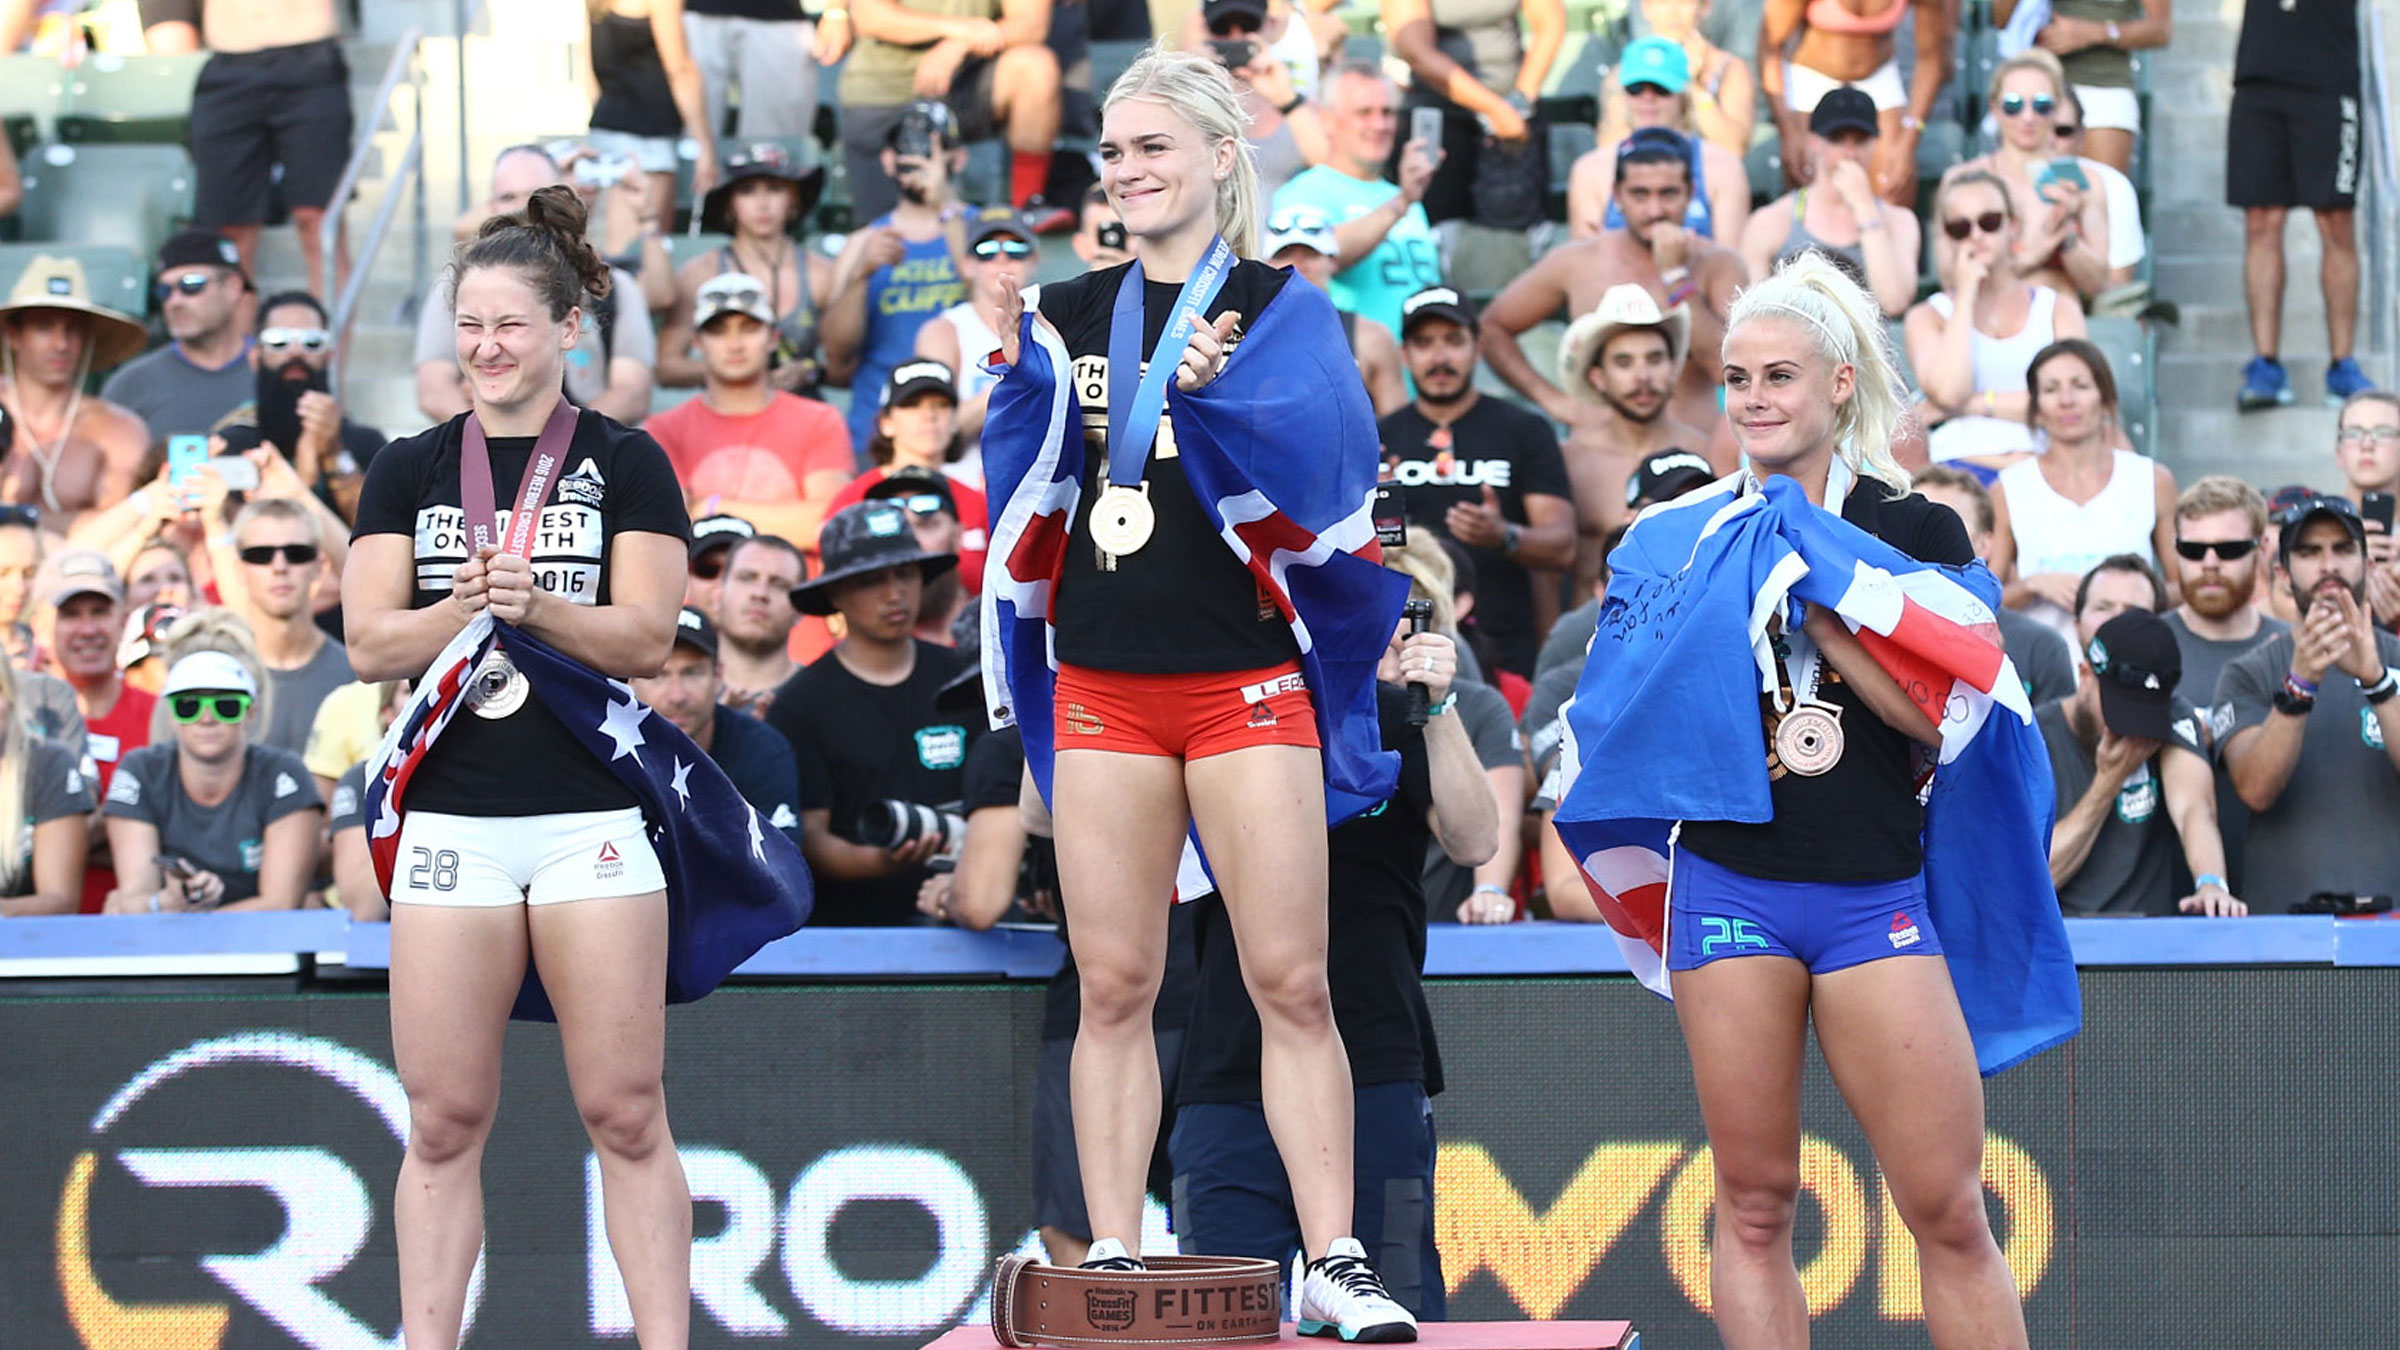 f2516d77e8 Katrin Davidsdottir wins for the second year in a row. Tia-Clair Toomey and  Sara Sigmundsdottir finish in second and third, respectively.